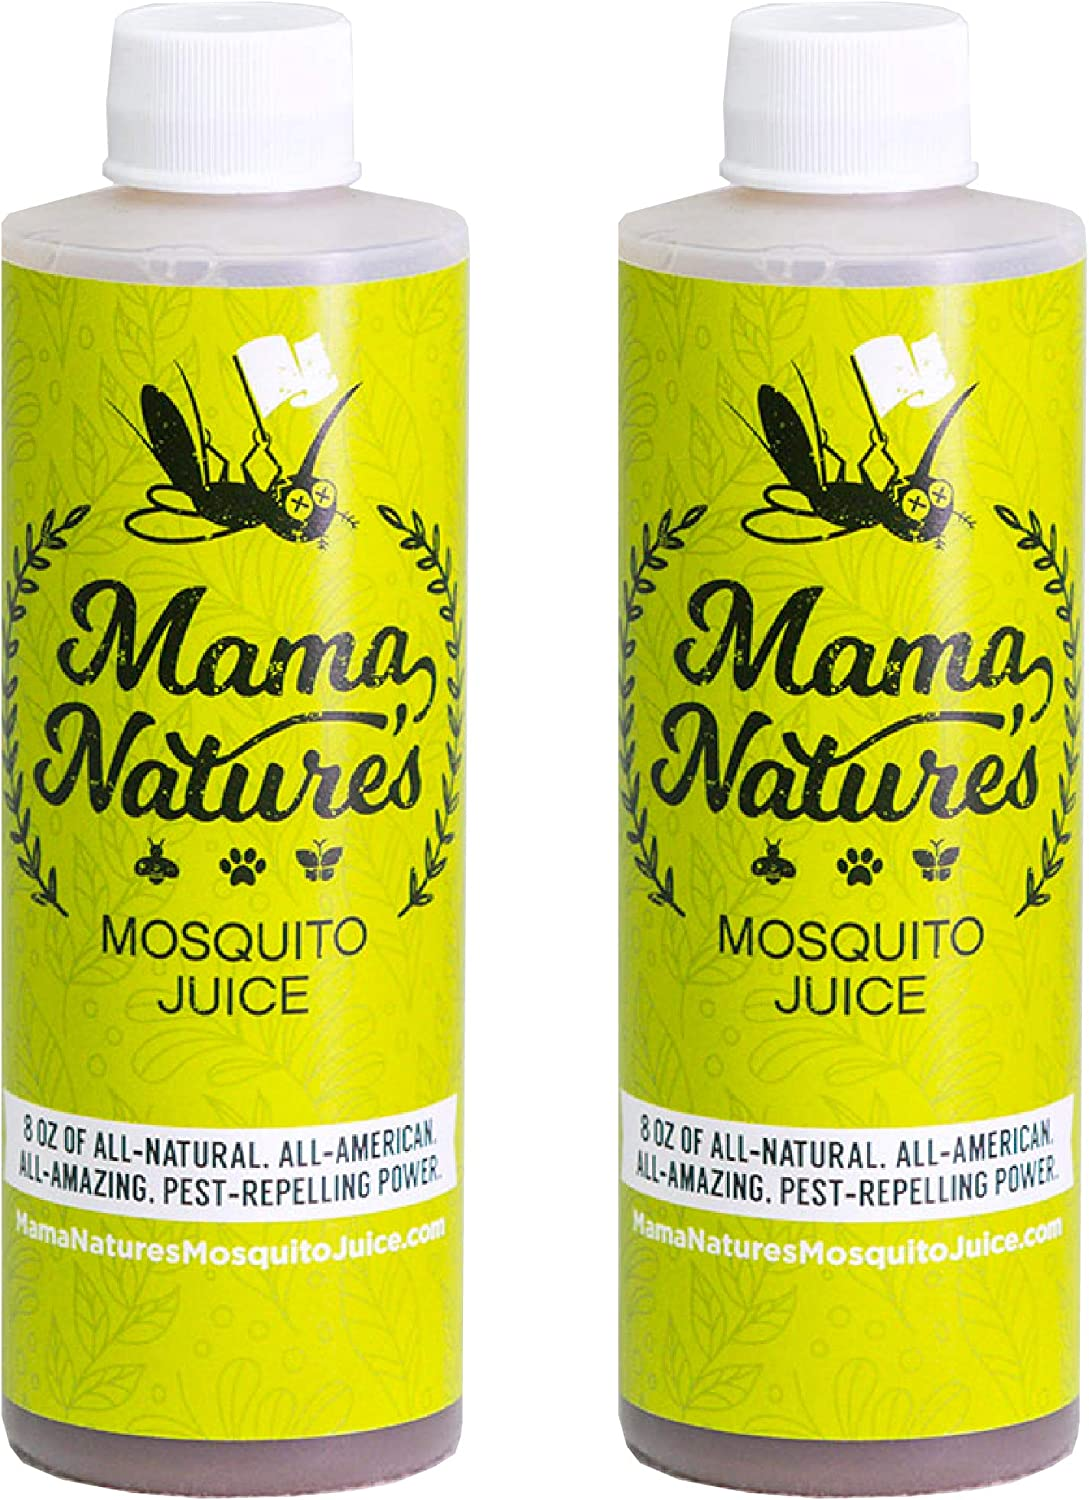 Mama supreme Nature's Mosquito Juice - Chicago Mall Mosq Repellent Outdoor